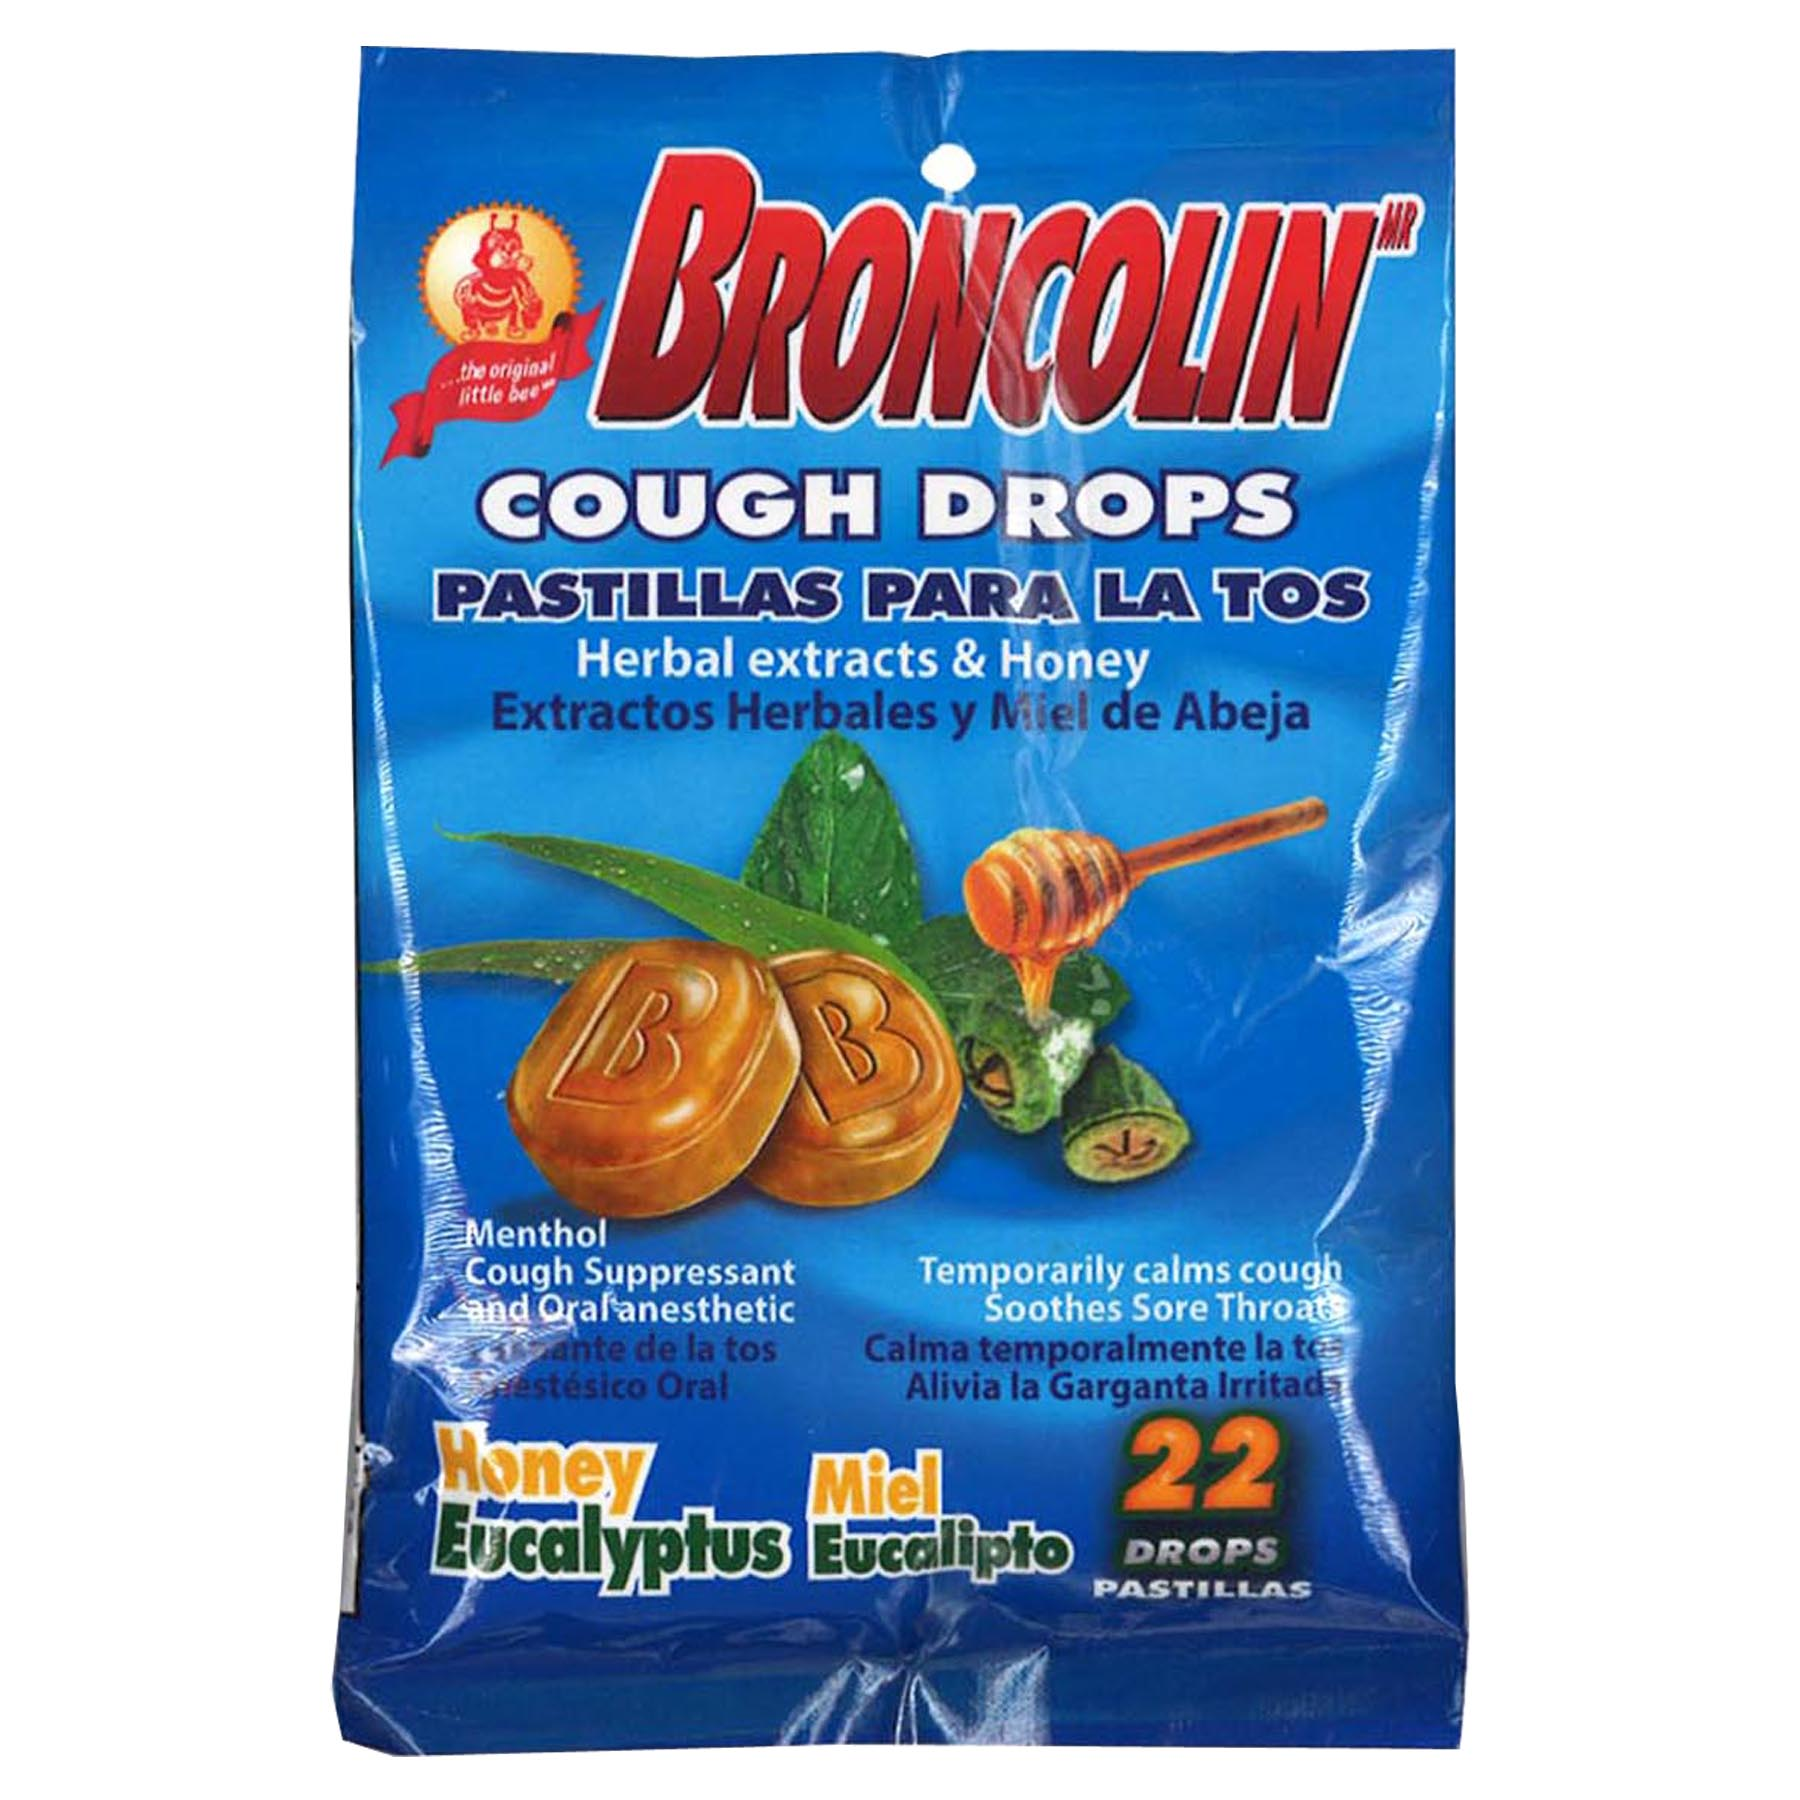 Broncolin Honey-Eucalyptus Bag